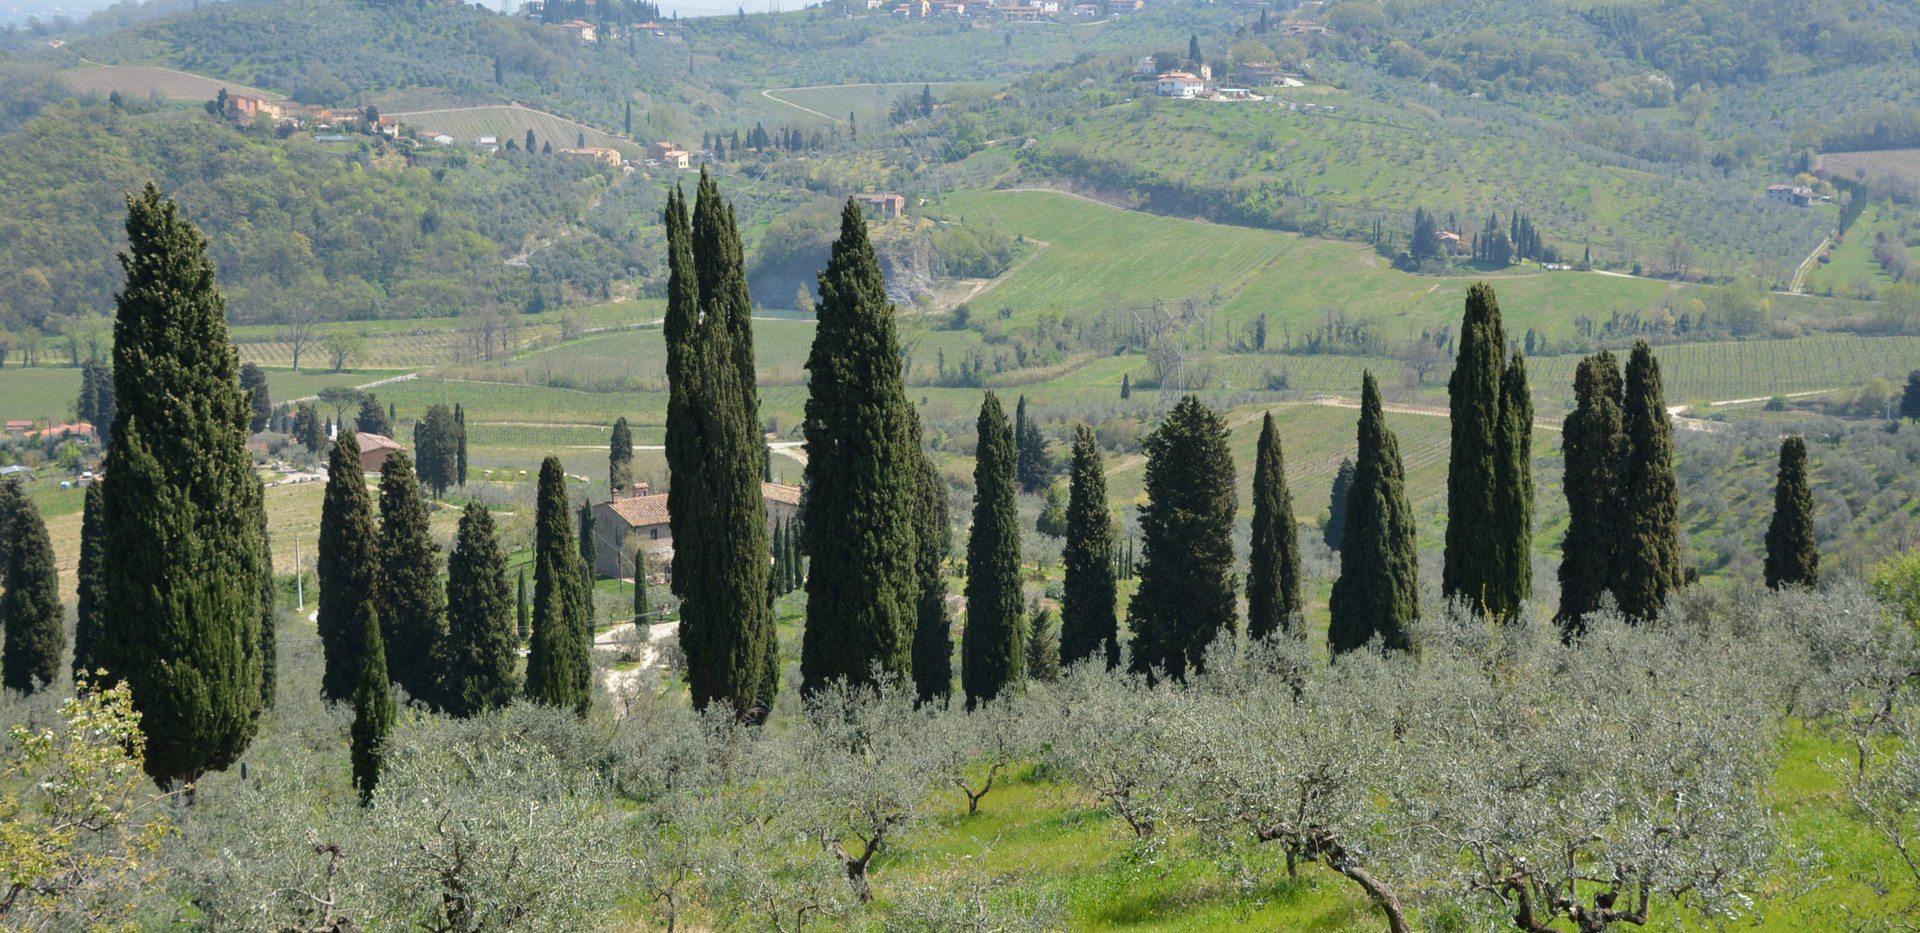 Cypress lanes towards the winery